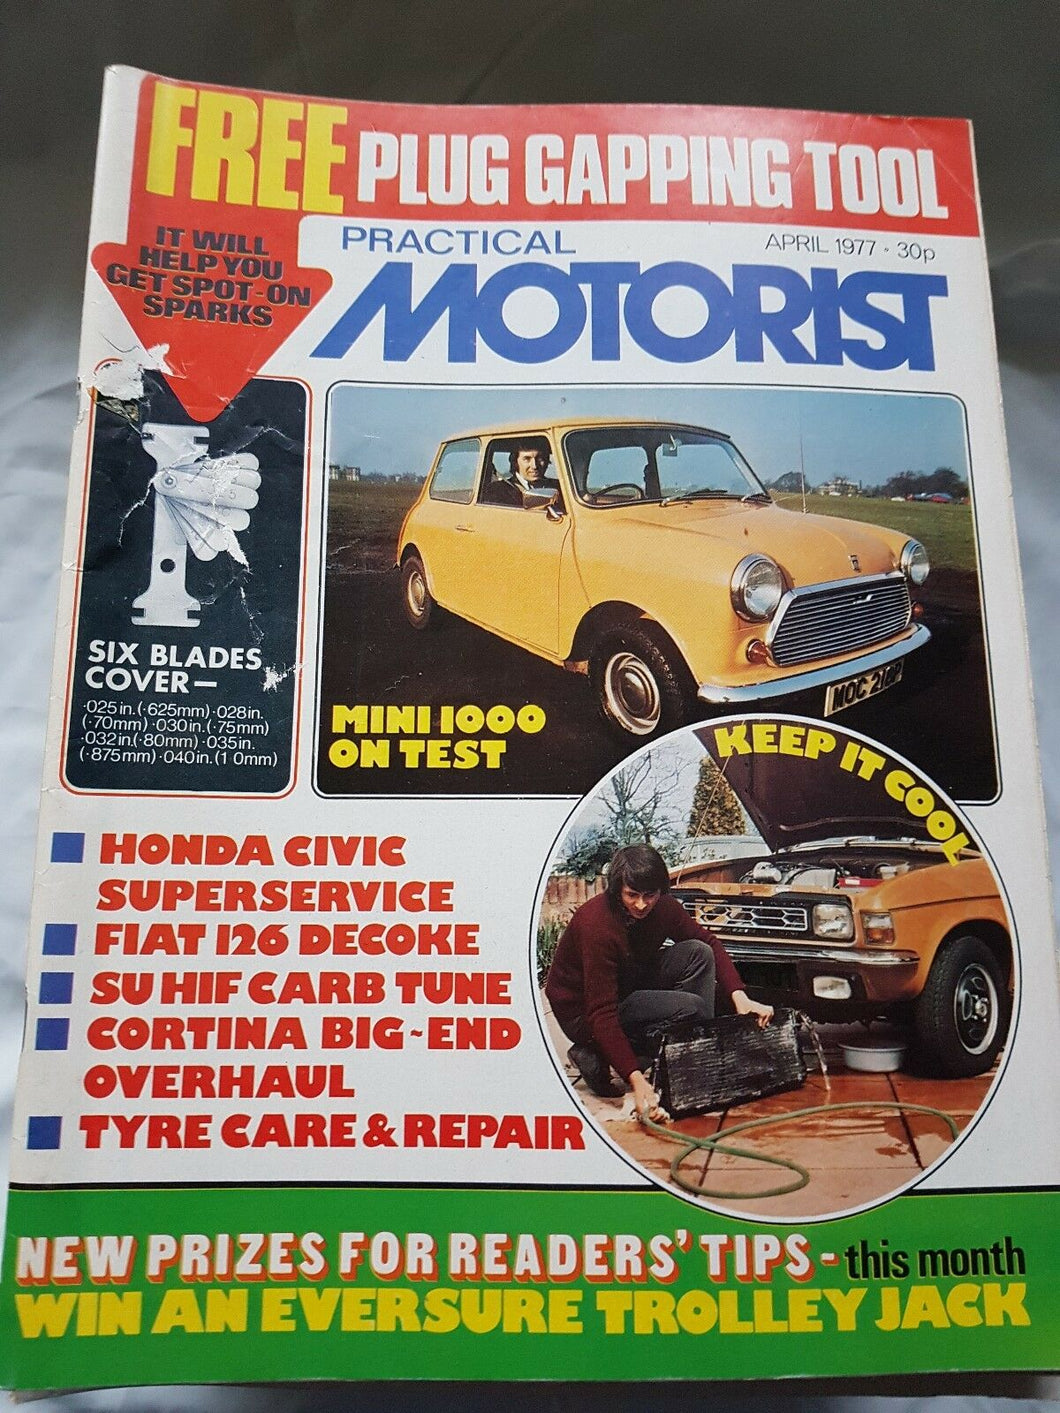 Practical motorist April 1977 mini 1000 Honda Civic Fiat 126 Cortina no freebies